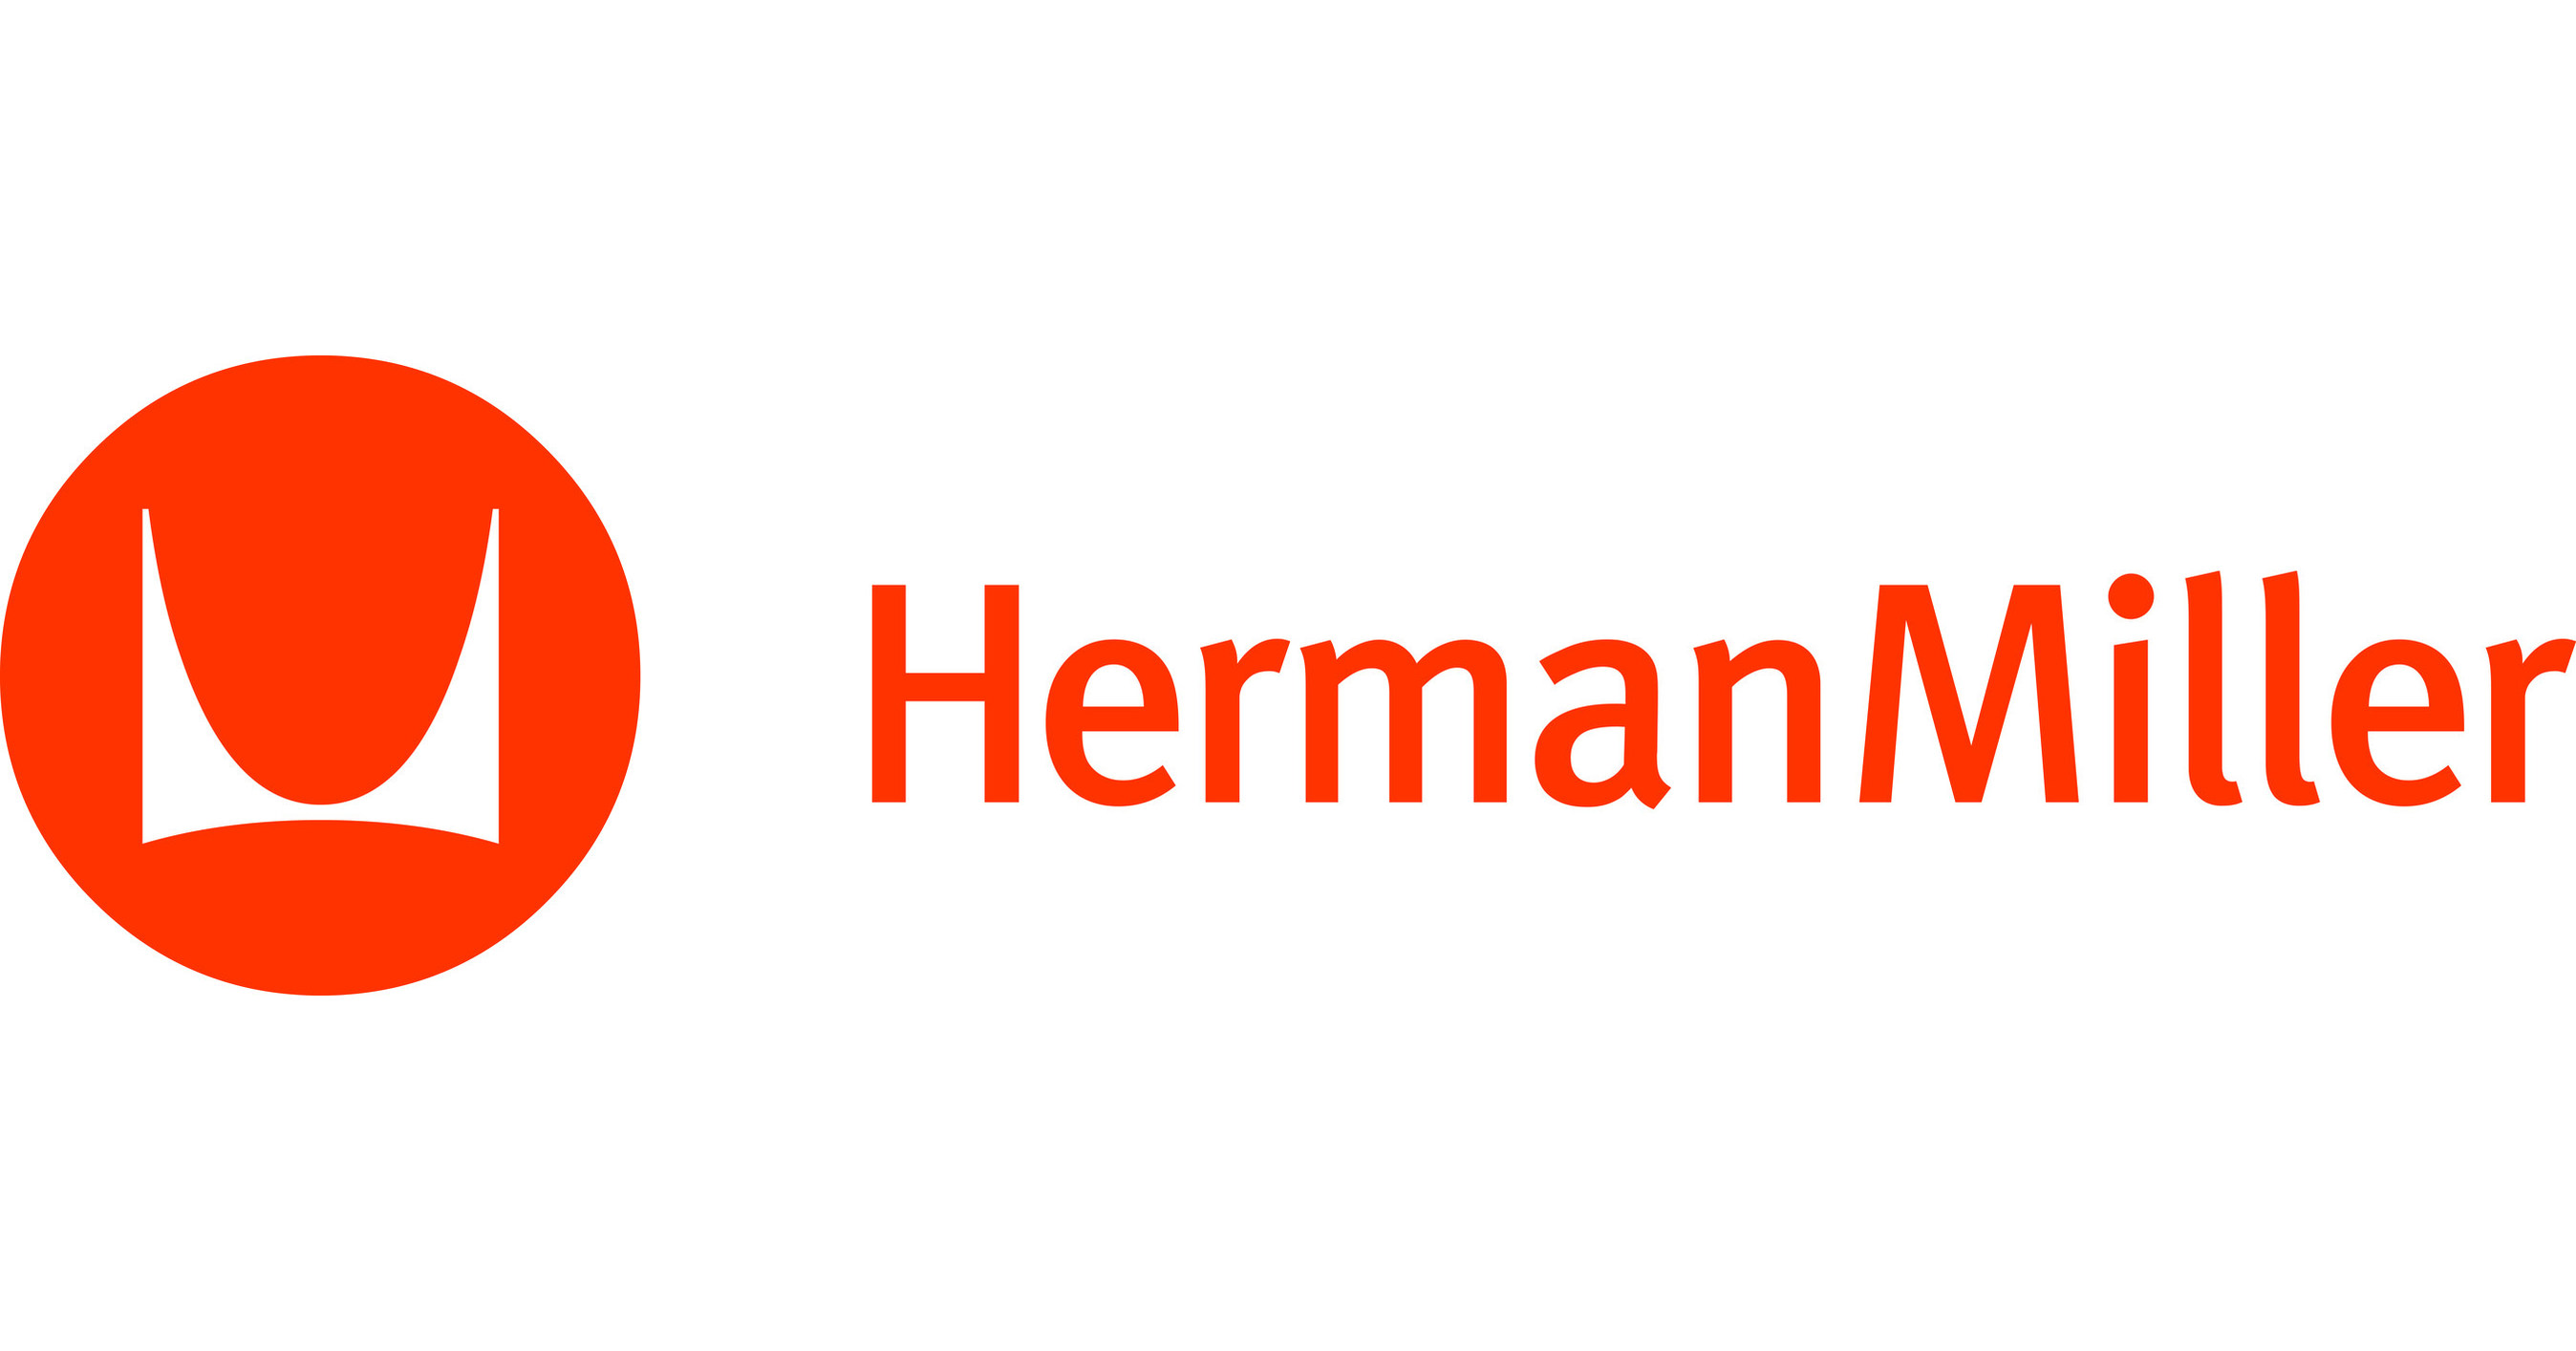 Herman Miller Introduces a New Digital System, Connecting Furniture to Help Organizations Improve